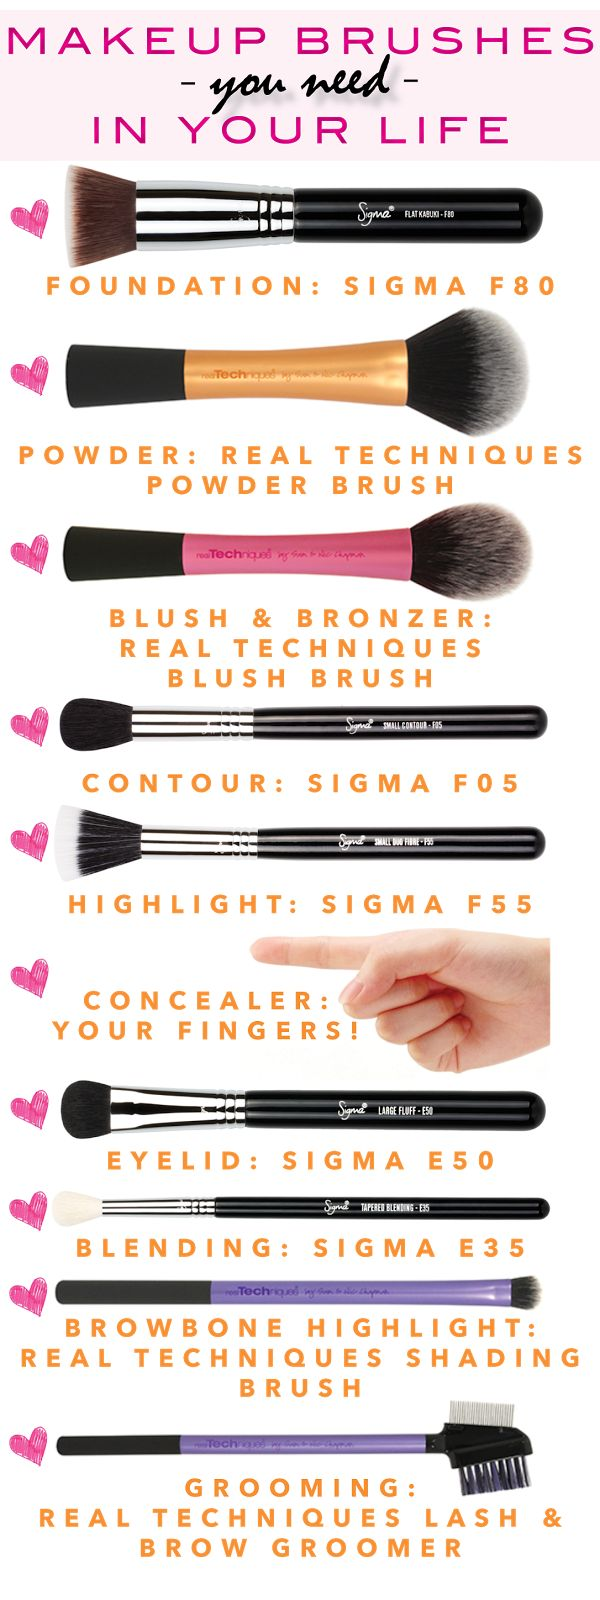 Apply Makeup Like a Pro: Makeup Brushes You Need in Your Life